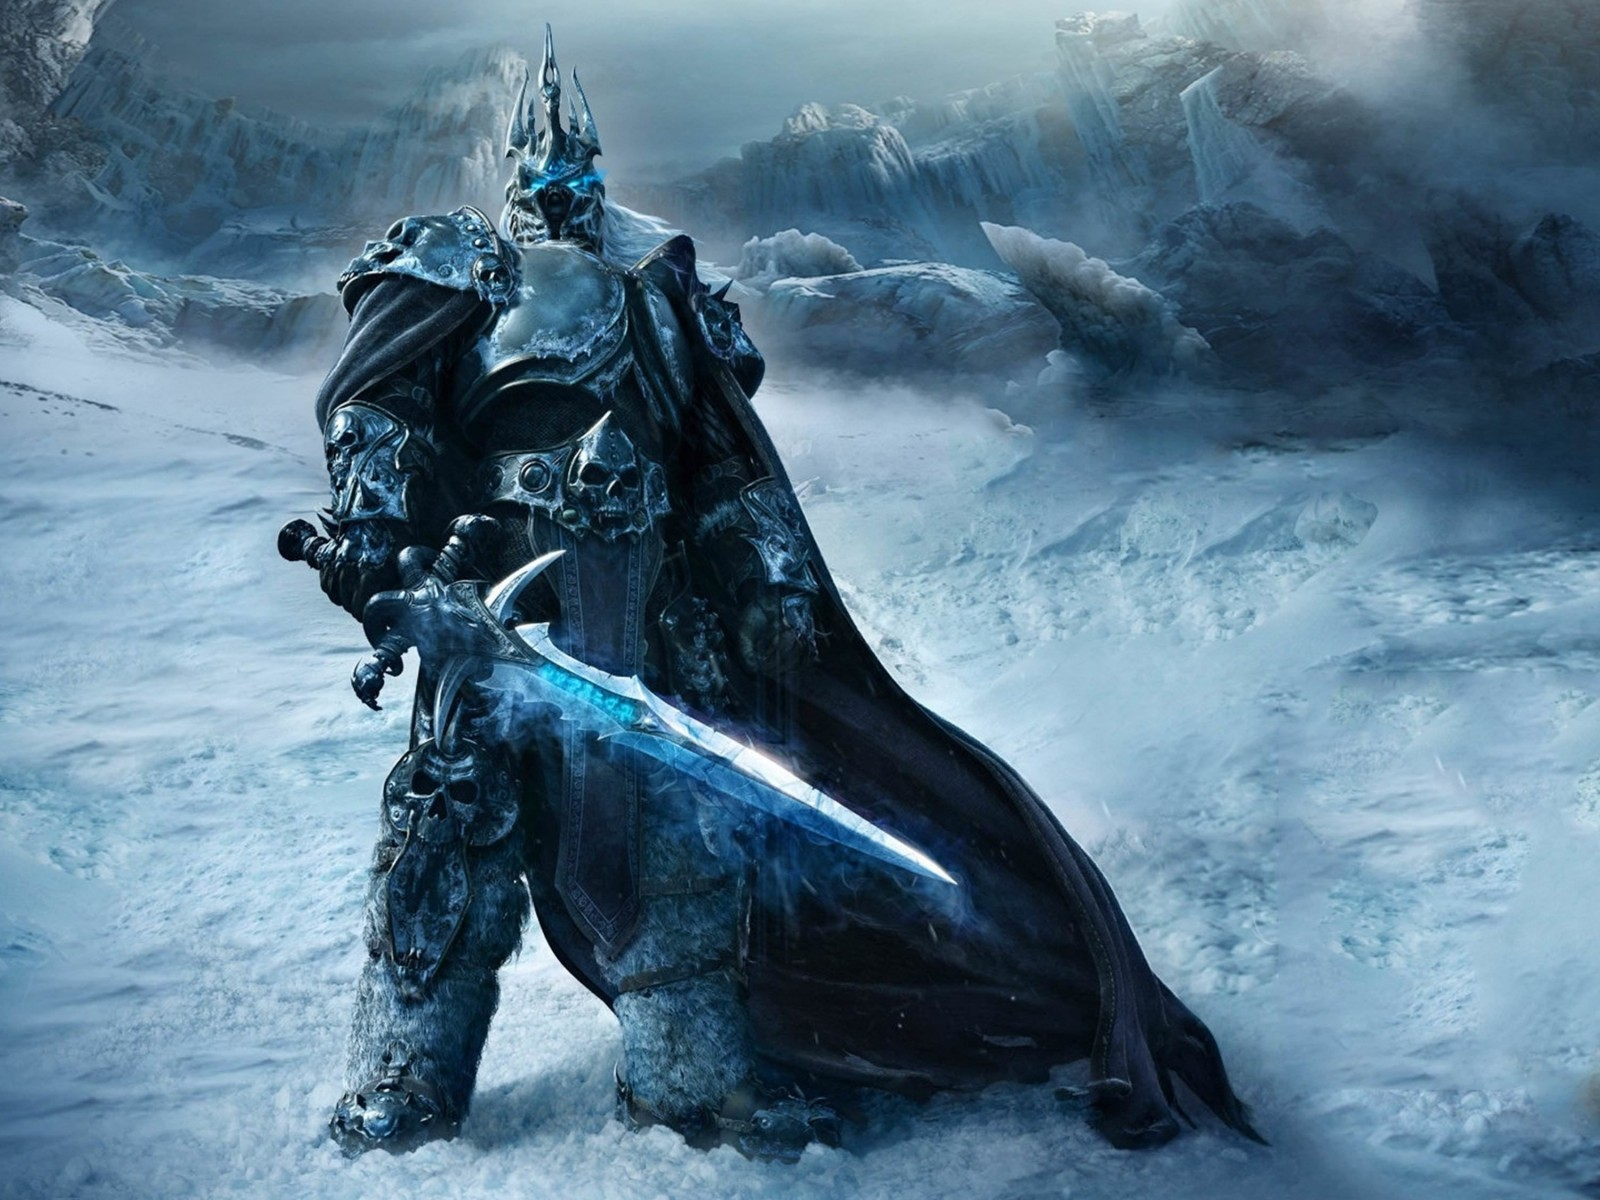 World of Warcraft: Wrath of the Lich King Wallpaper for Desktop 1600x1200